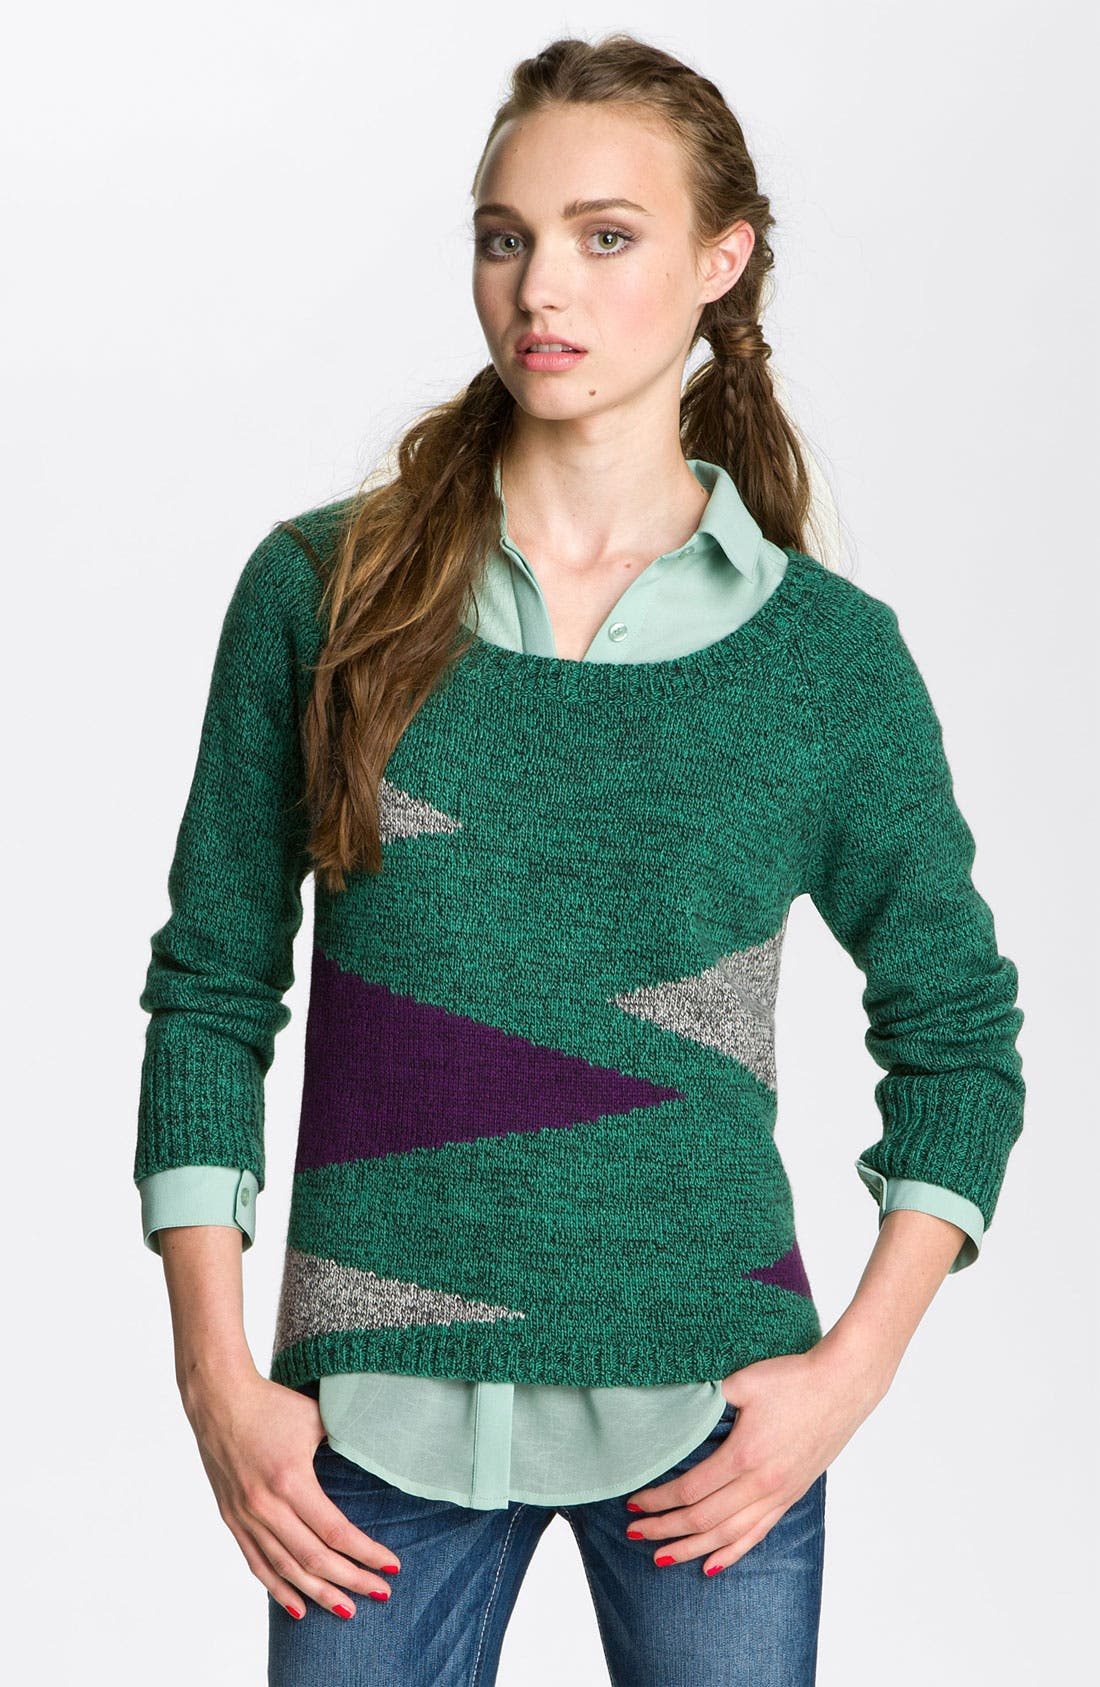 Alternate Image 1 Selected - Love By Design Geometric Sweater (Juniors)